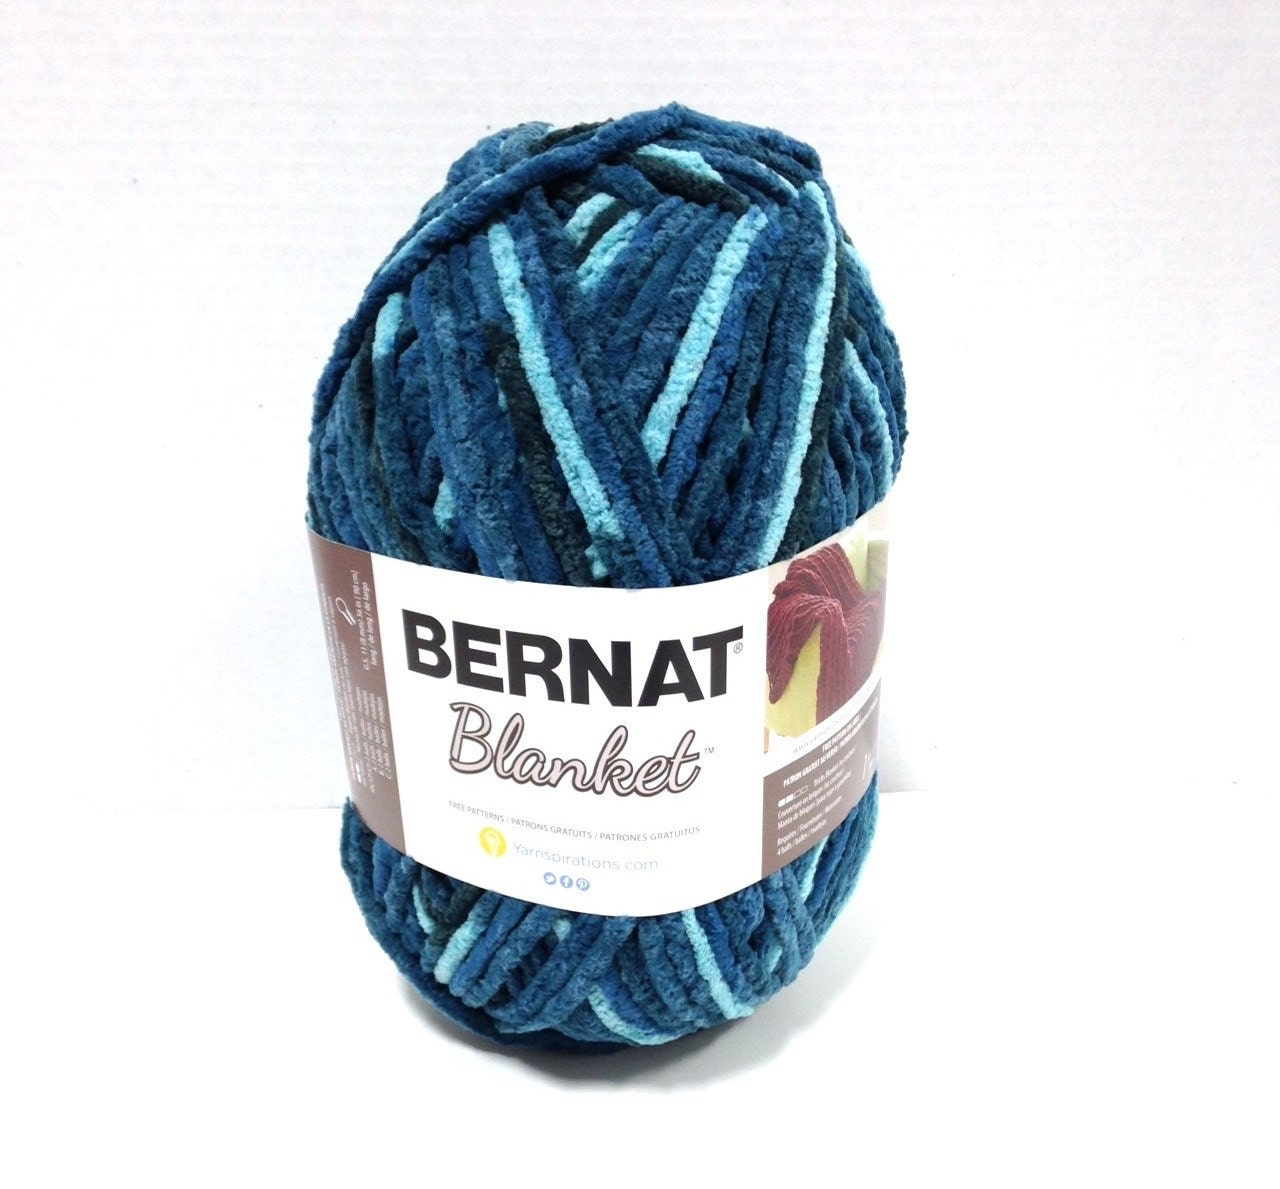 bernat blanket yarn in teal dreams large 300 gram ball new